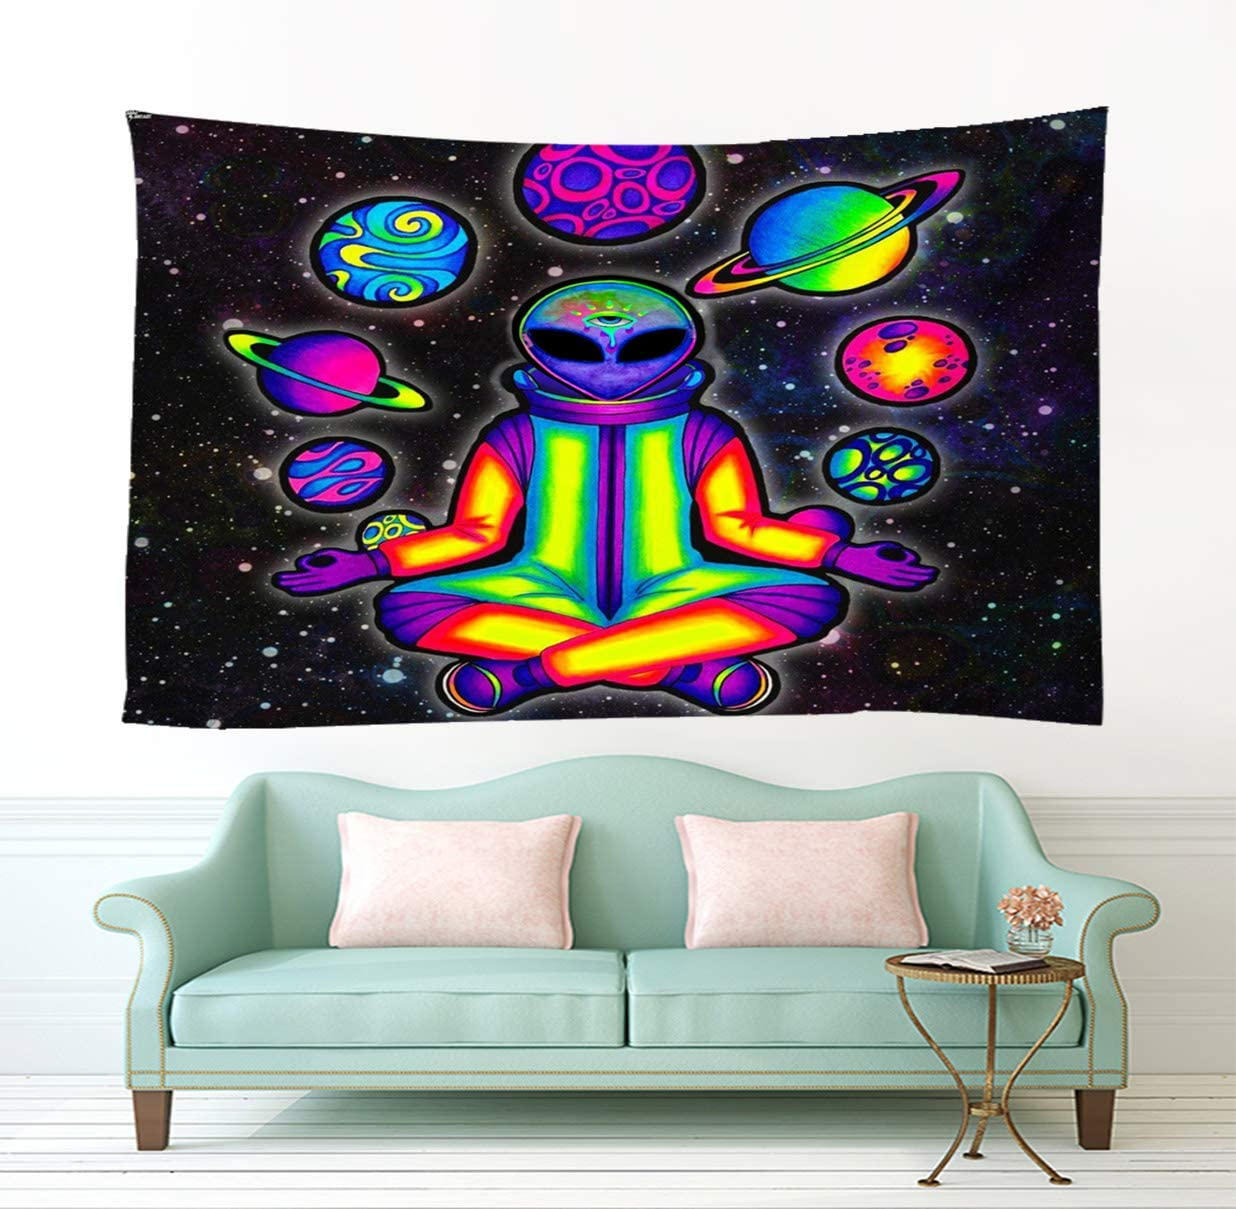 Bit Better Alien Decor Tapestry-Cool Psychedelic Alien Stuff Wall Art for Home Wall Hanging - Alien Wall Tapestry for Bedroom Room Decor (51 59 in-130 150cm)